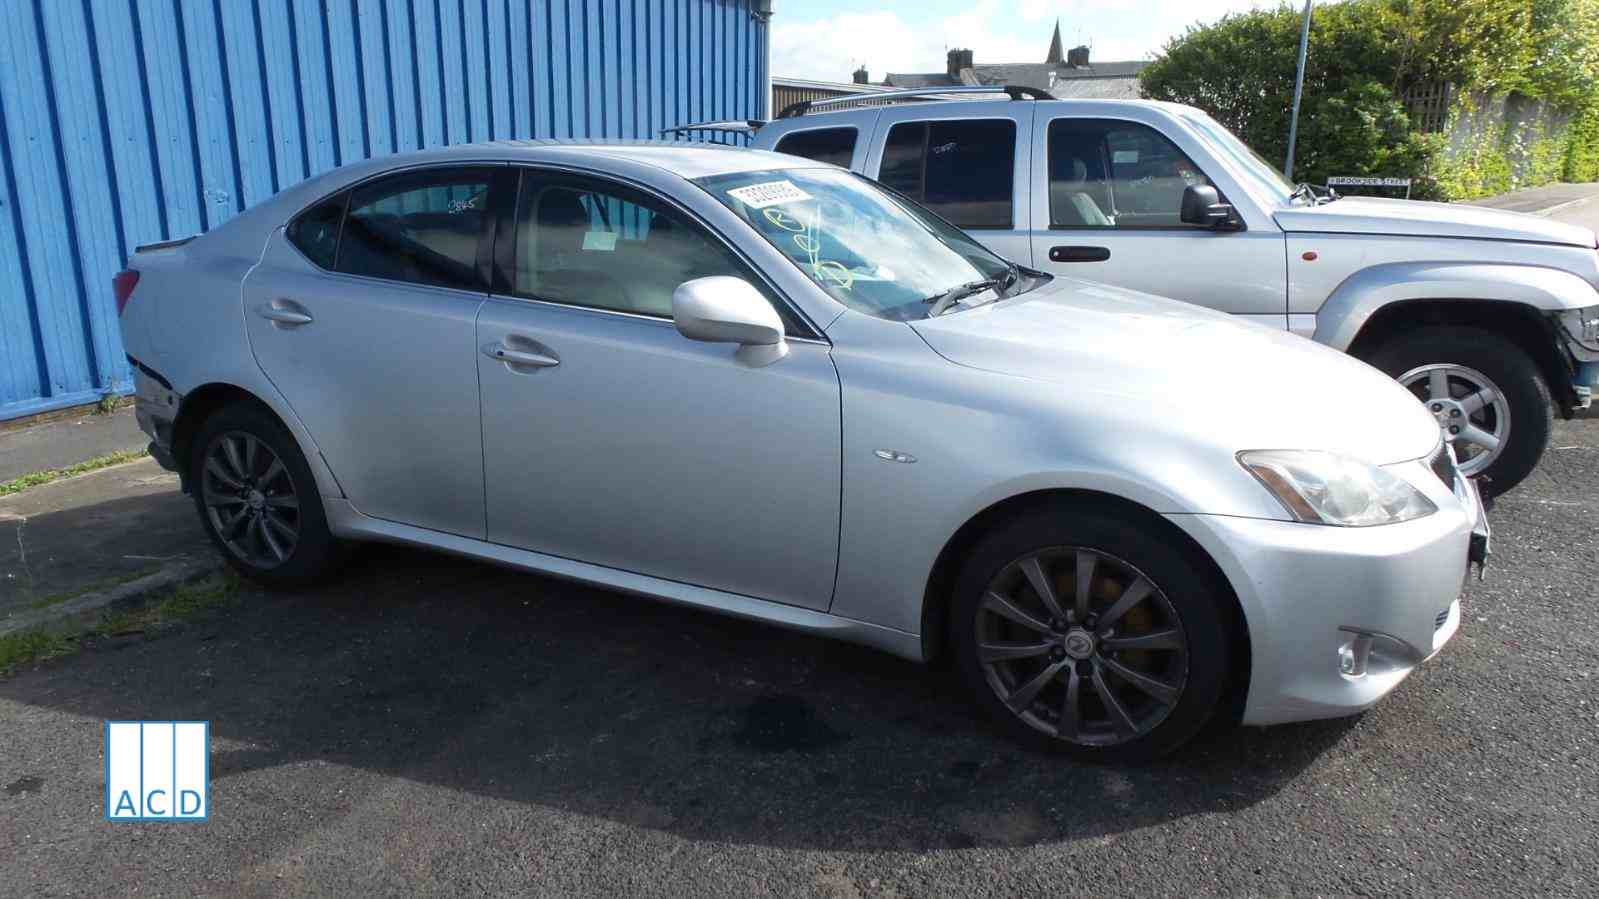 Lexus IS250 2.5L Petrol 6-Speed Manual 2006 #2845 01